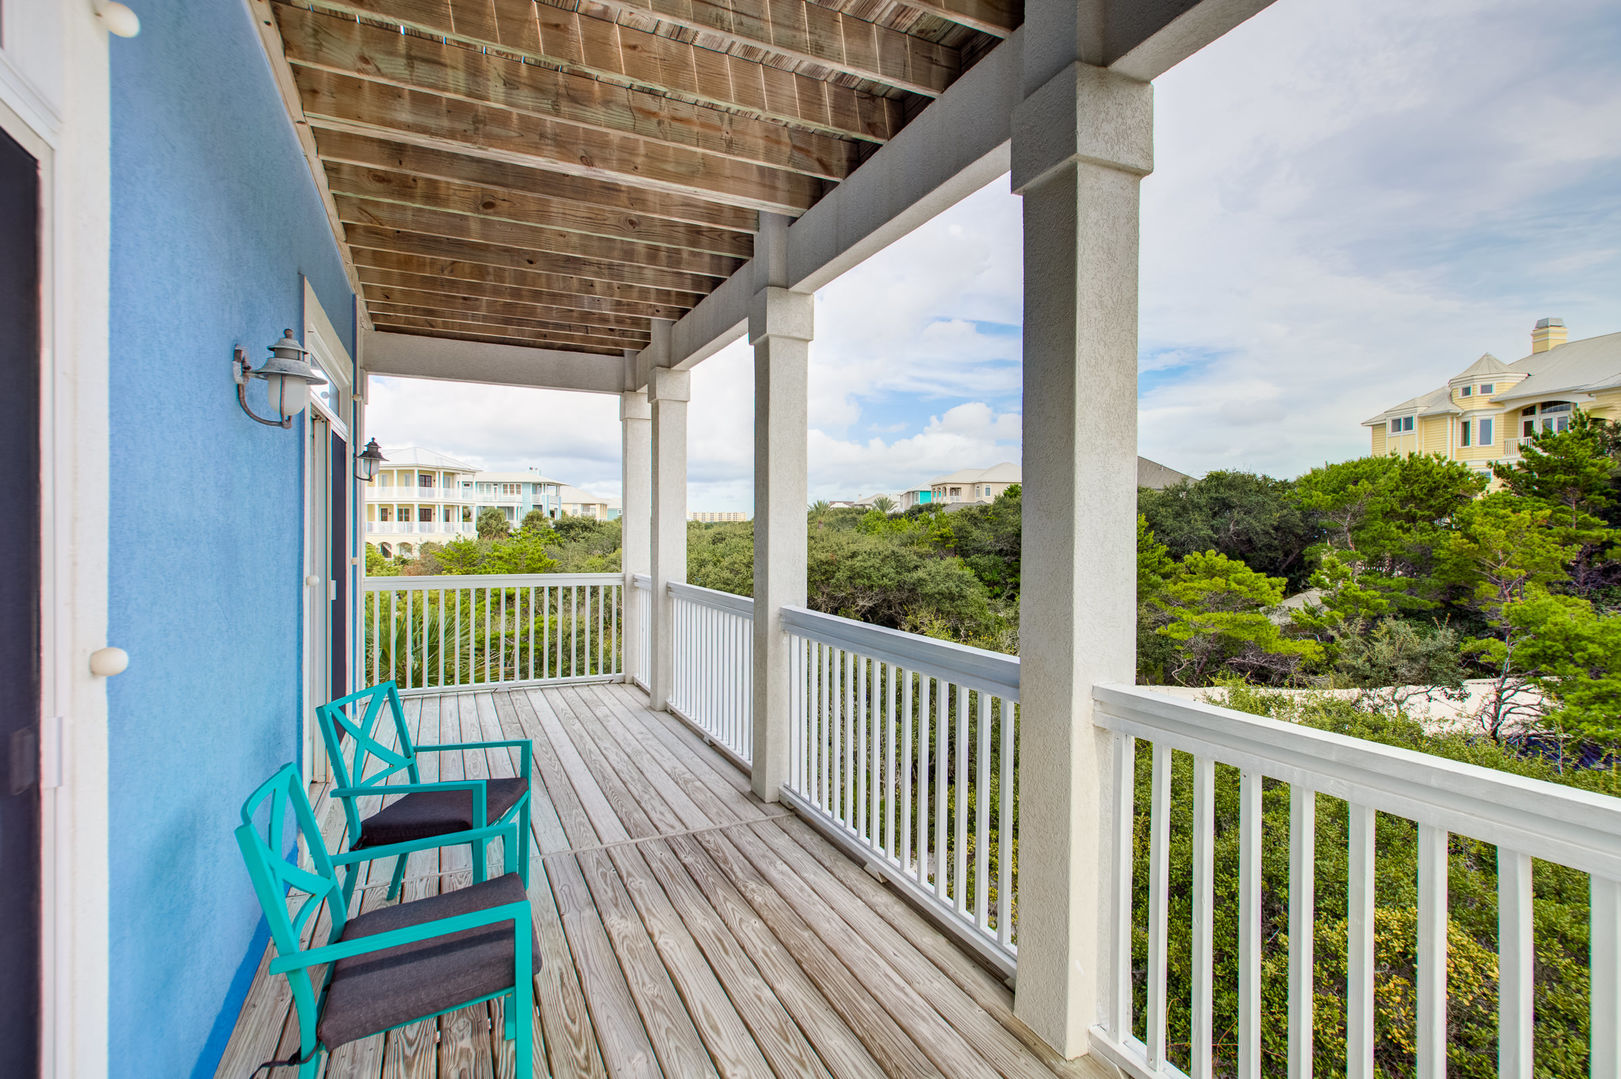 Enjoy Seating on the Balcony of Vacation Home in Gulf Shores.